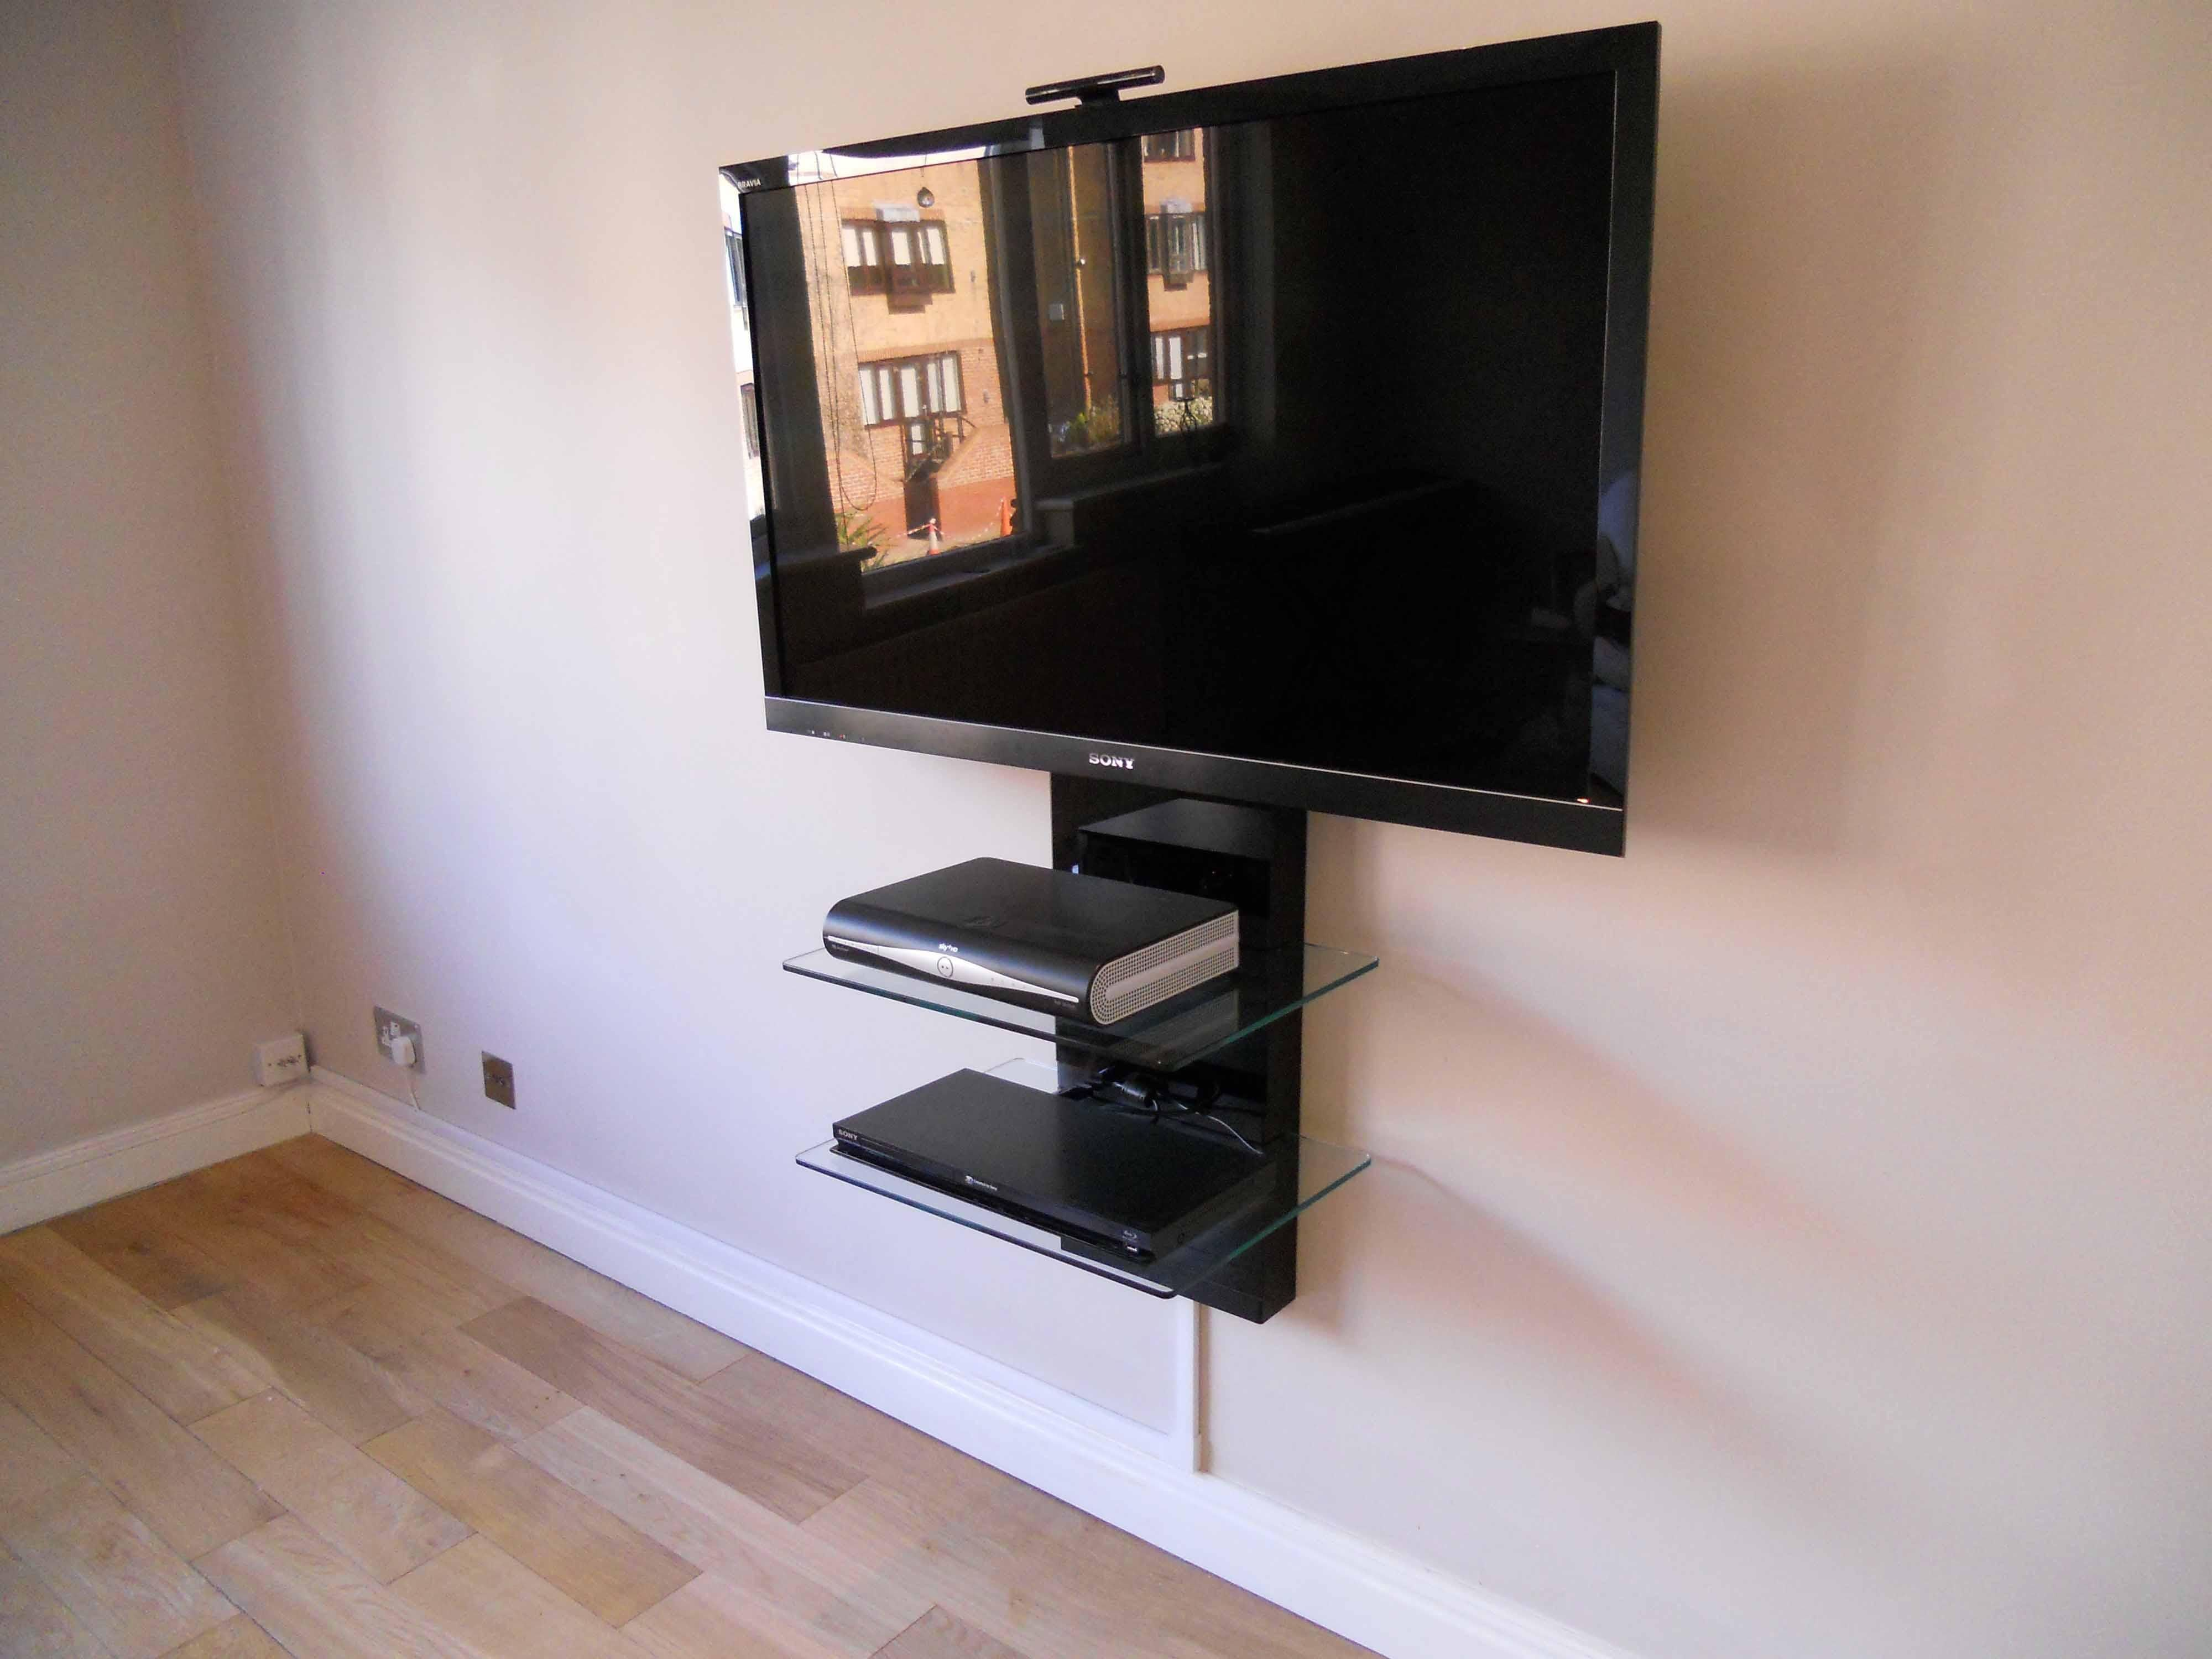 Corner Tv Wall Mount Bracket With Shelf Wall Mounted Shelves Tv